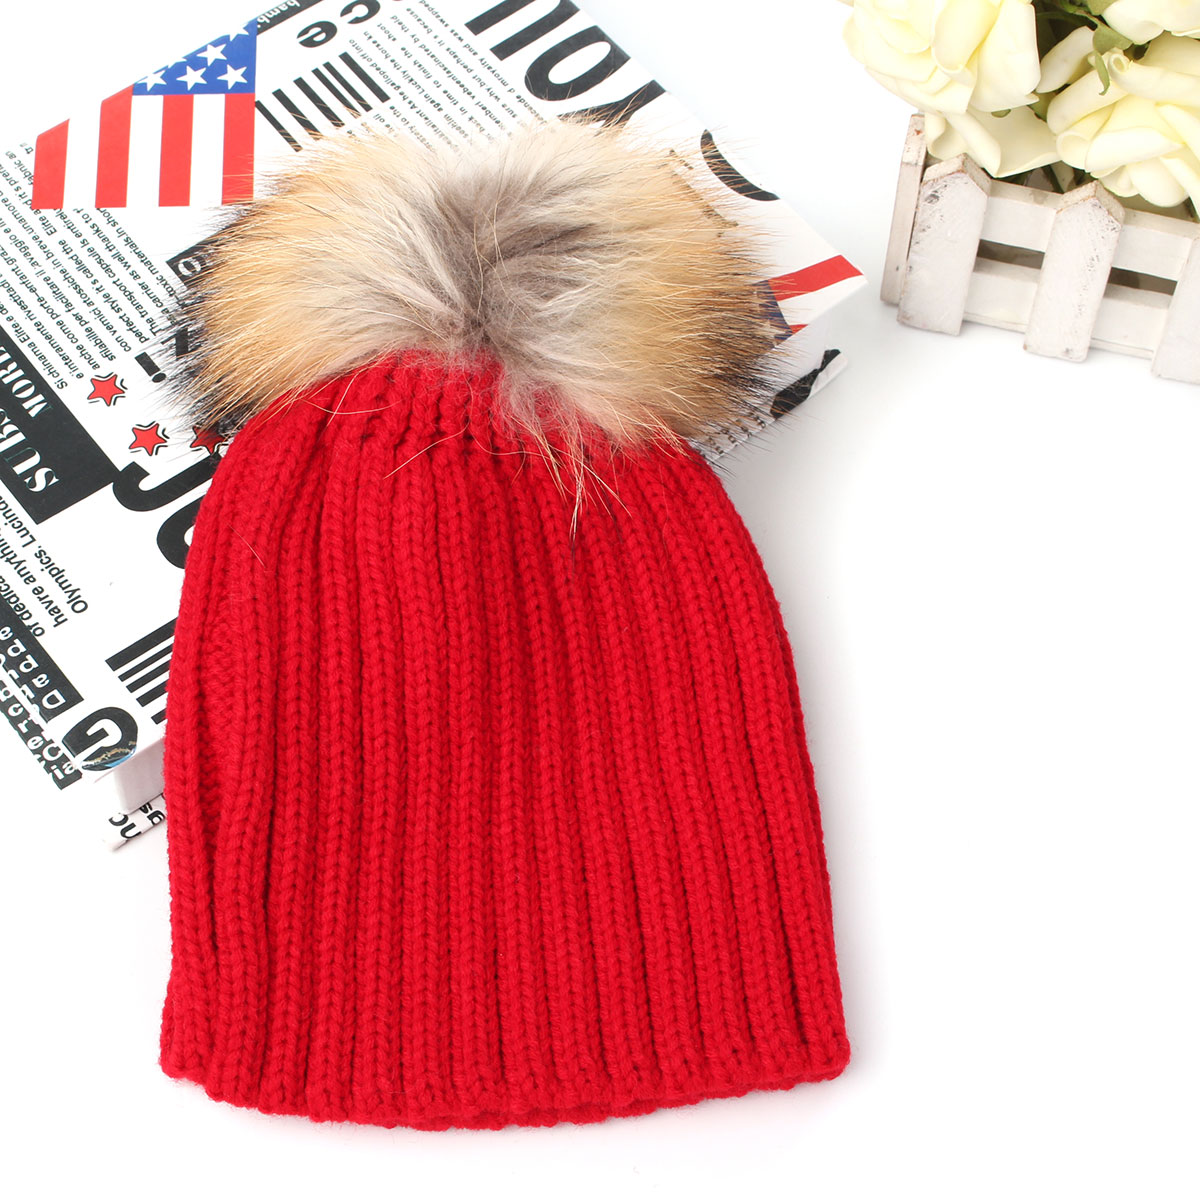 Children Warm Winter Wool Knit Beanie Raccoon Fur Pom Bobble Hat Crochet Ski Cap